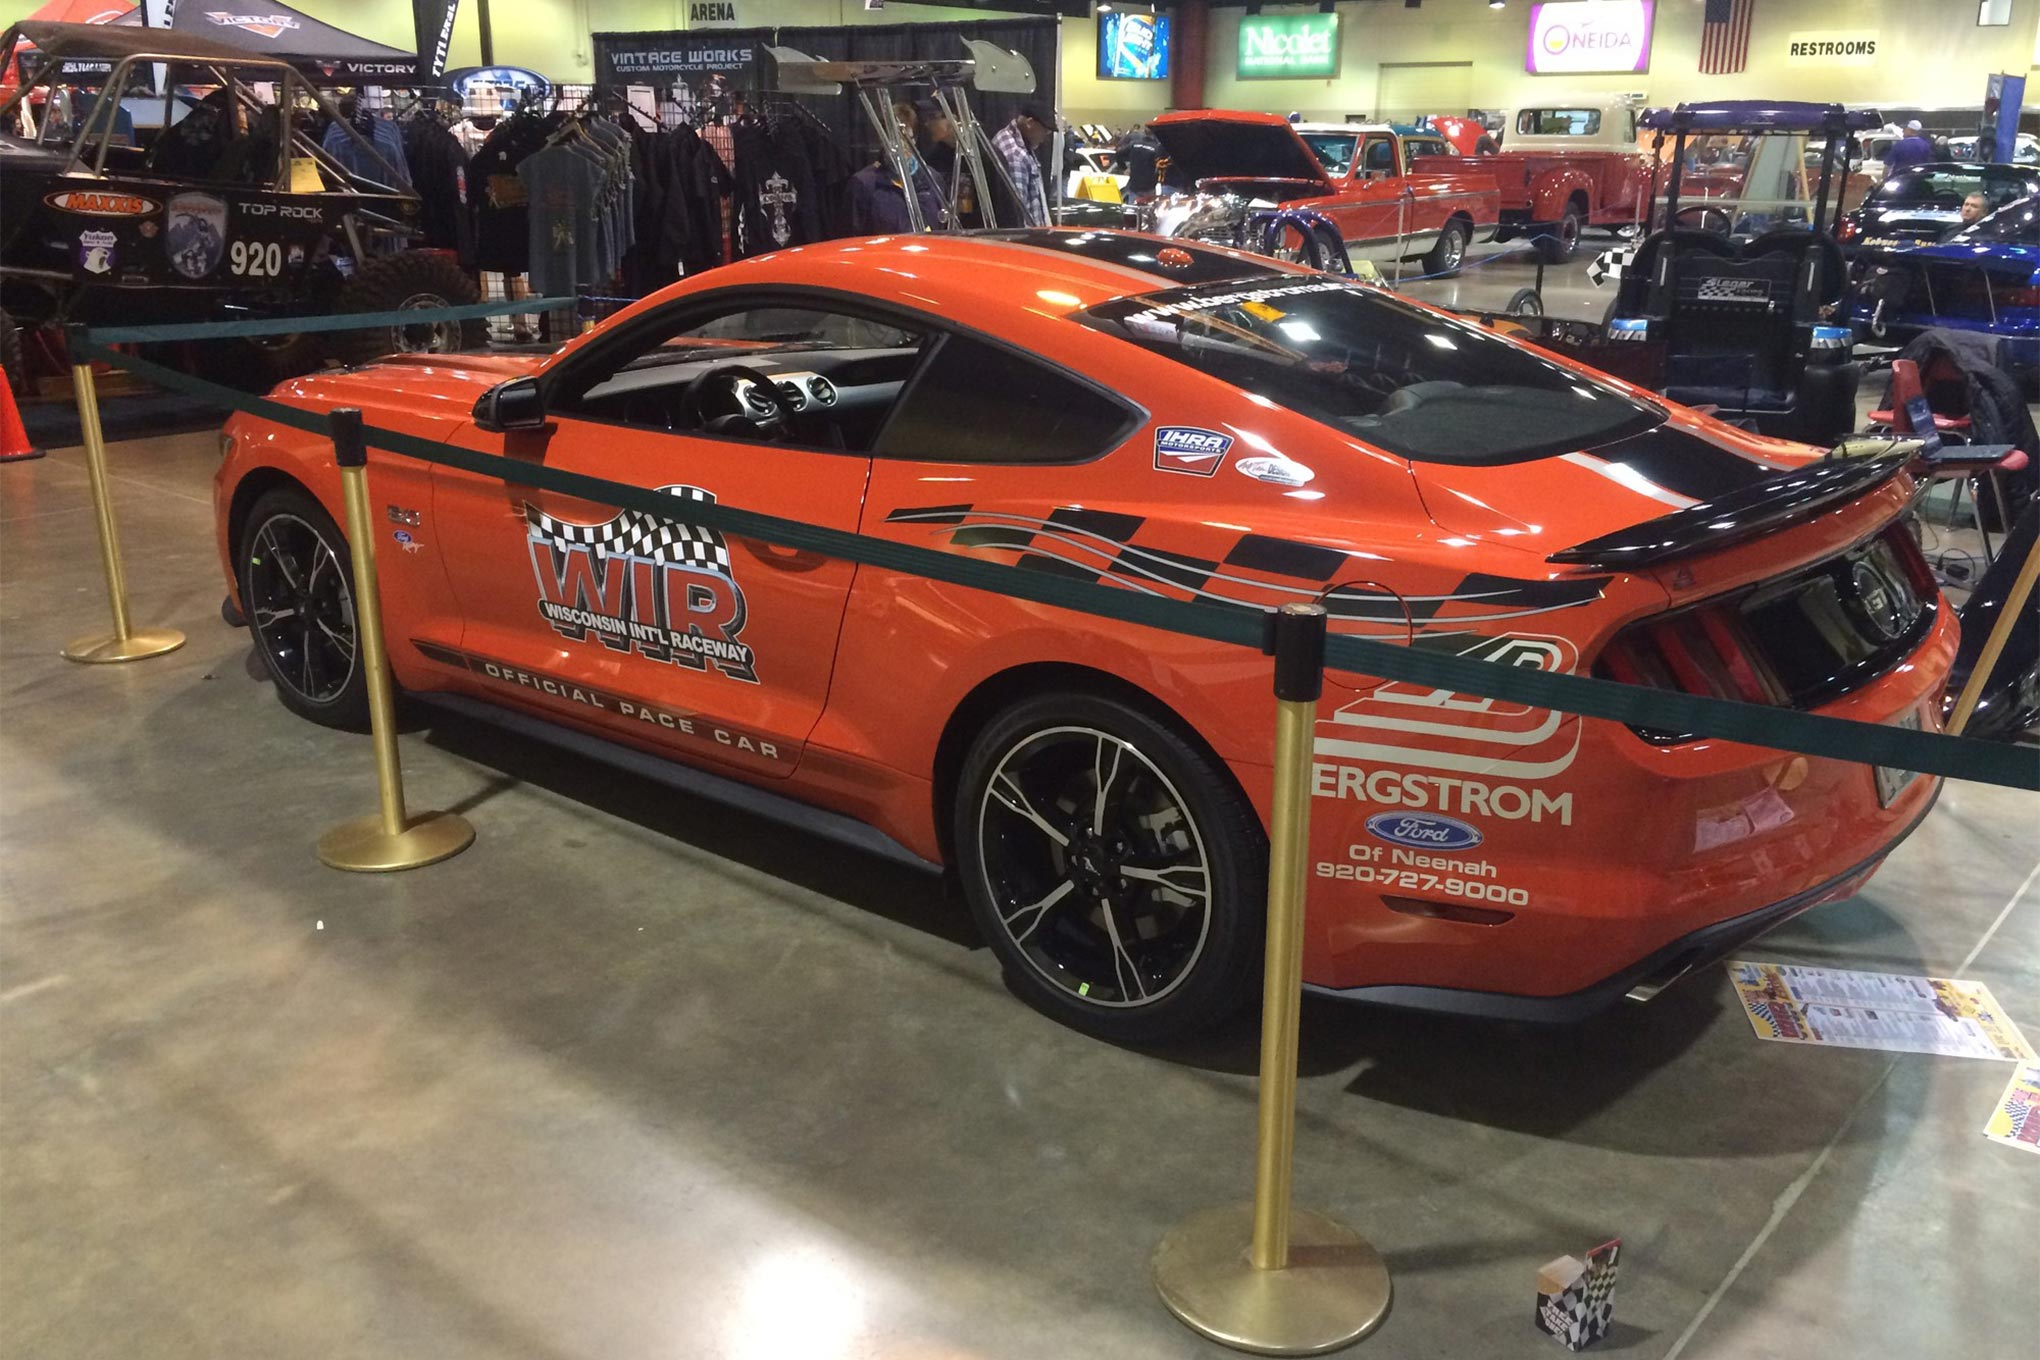 Wisconsin International Raceway's Pace Car for 2016.